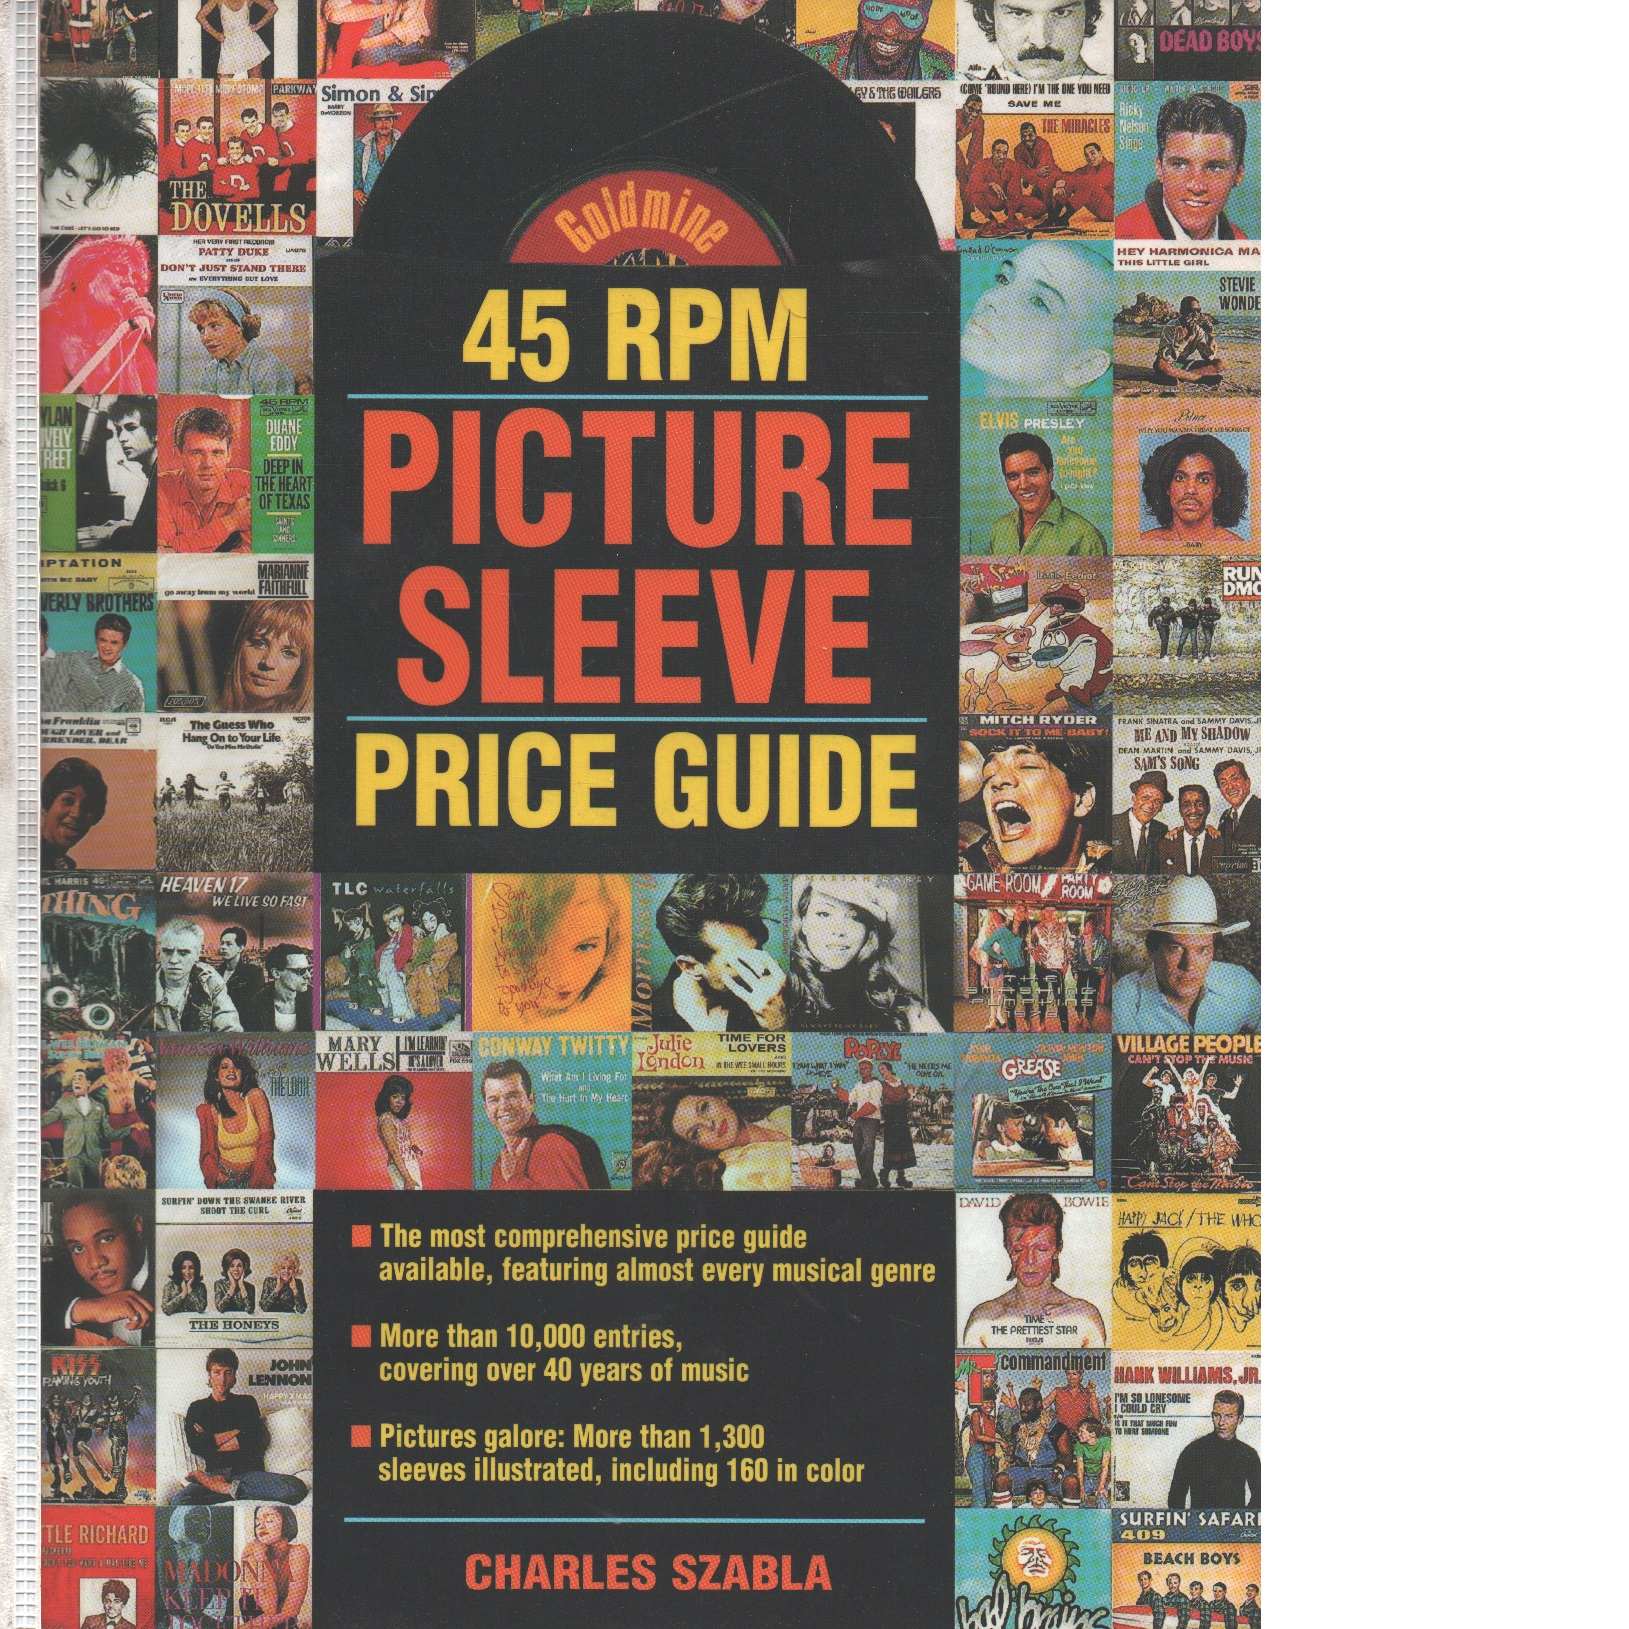 Goldmine 45 Rpm Picture Sleeve Price Guide - Szabla, Charles